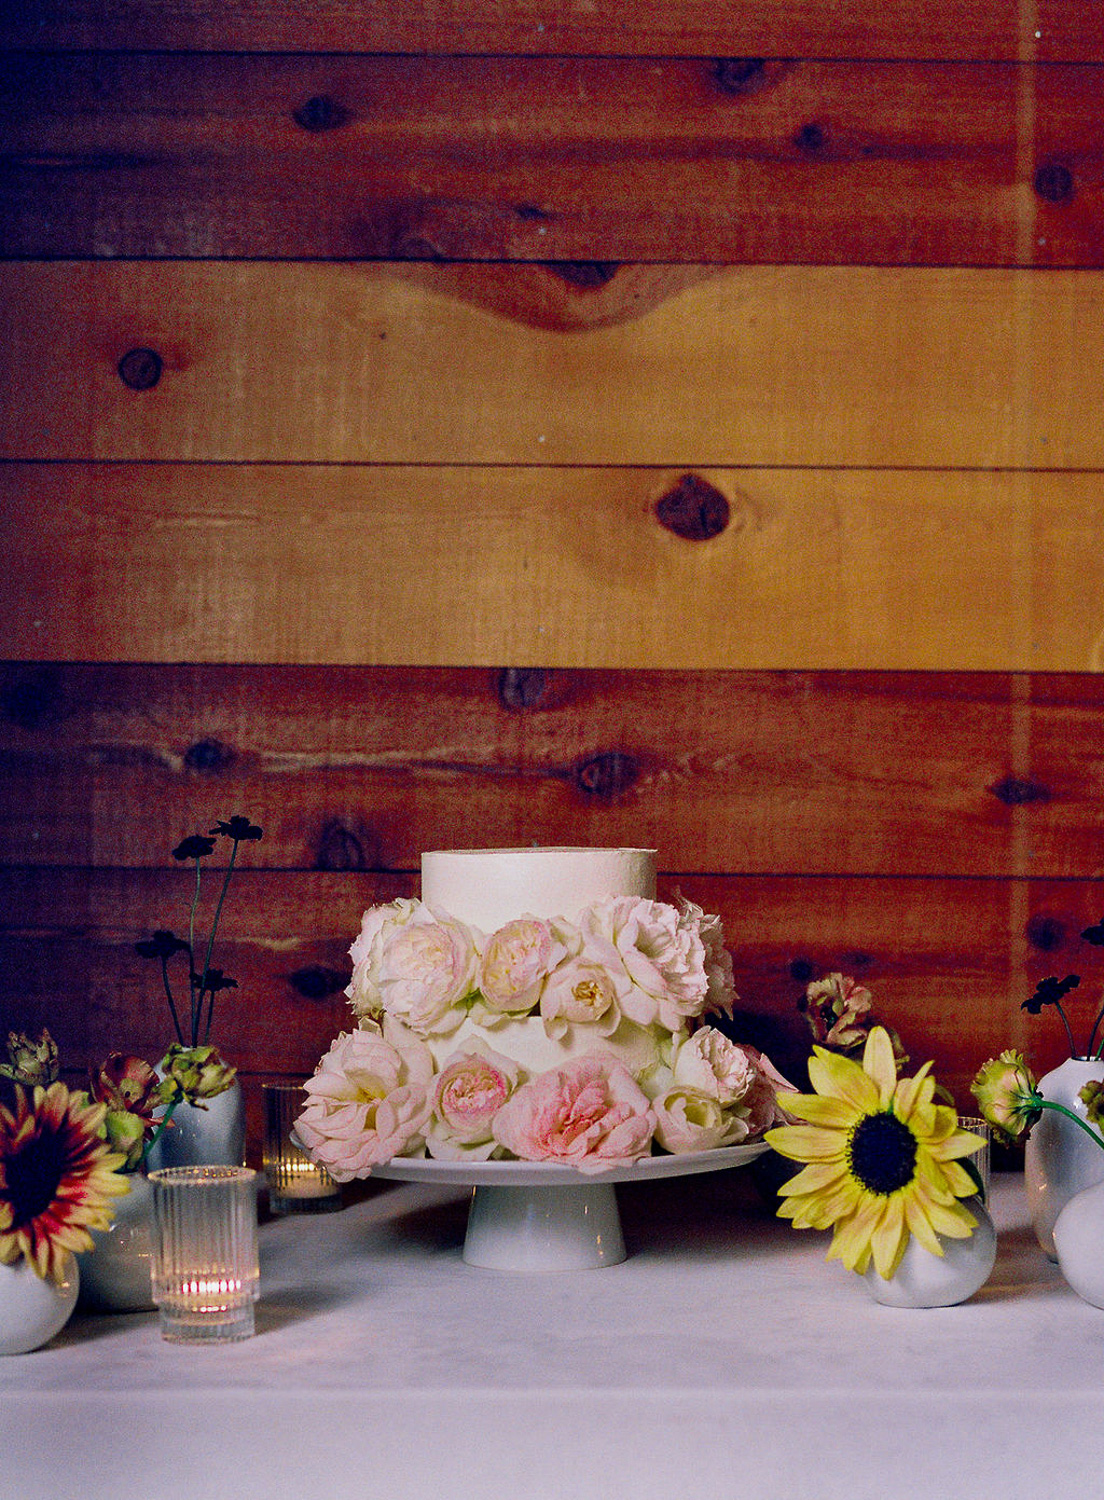 small wedding cake with pink peonies against wood wall